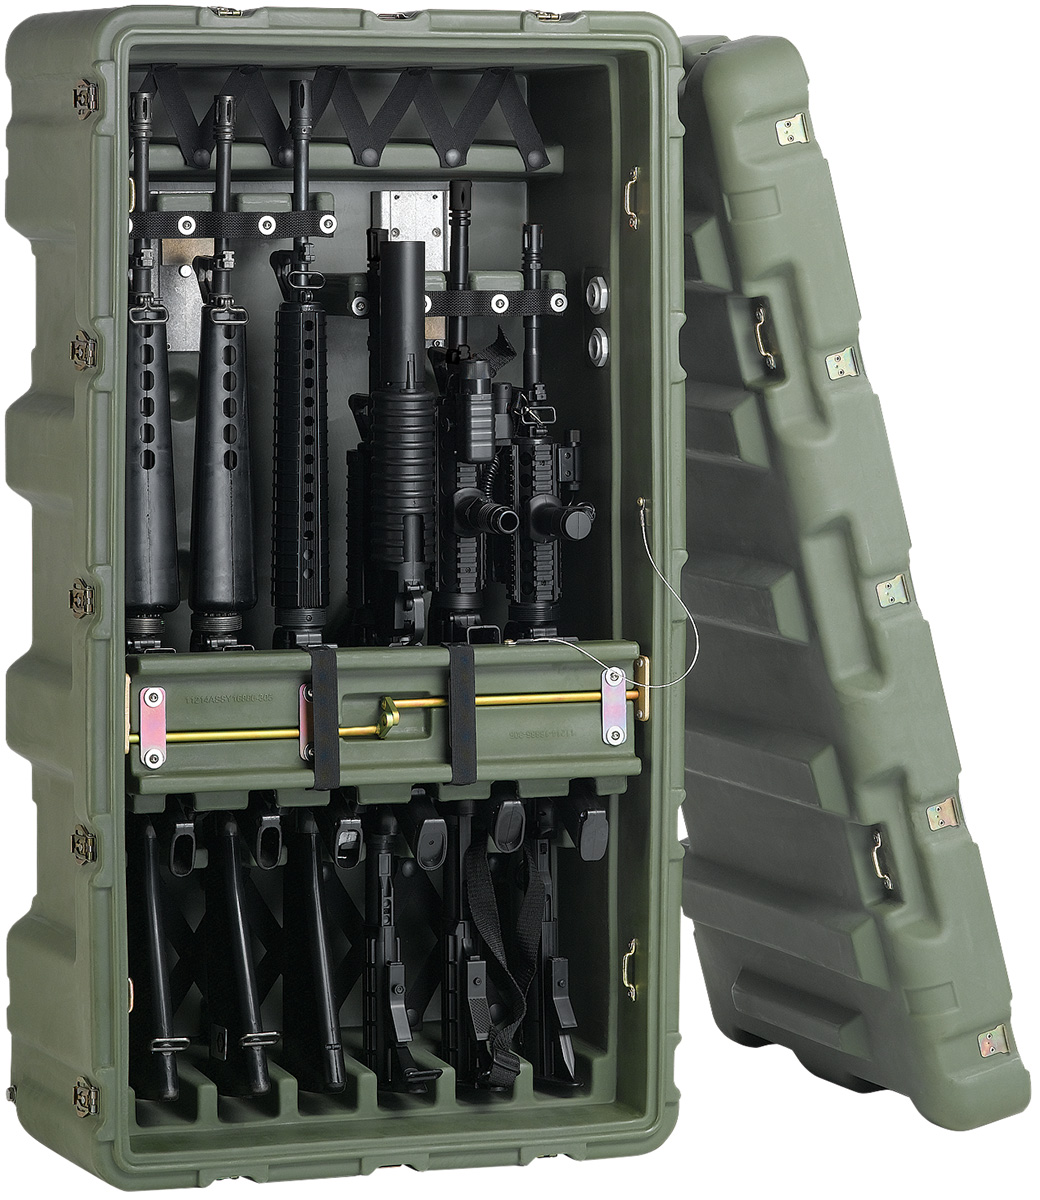 pelican peli products 472 M4 M16 6 usa military m4 m16 hardcase